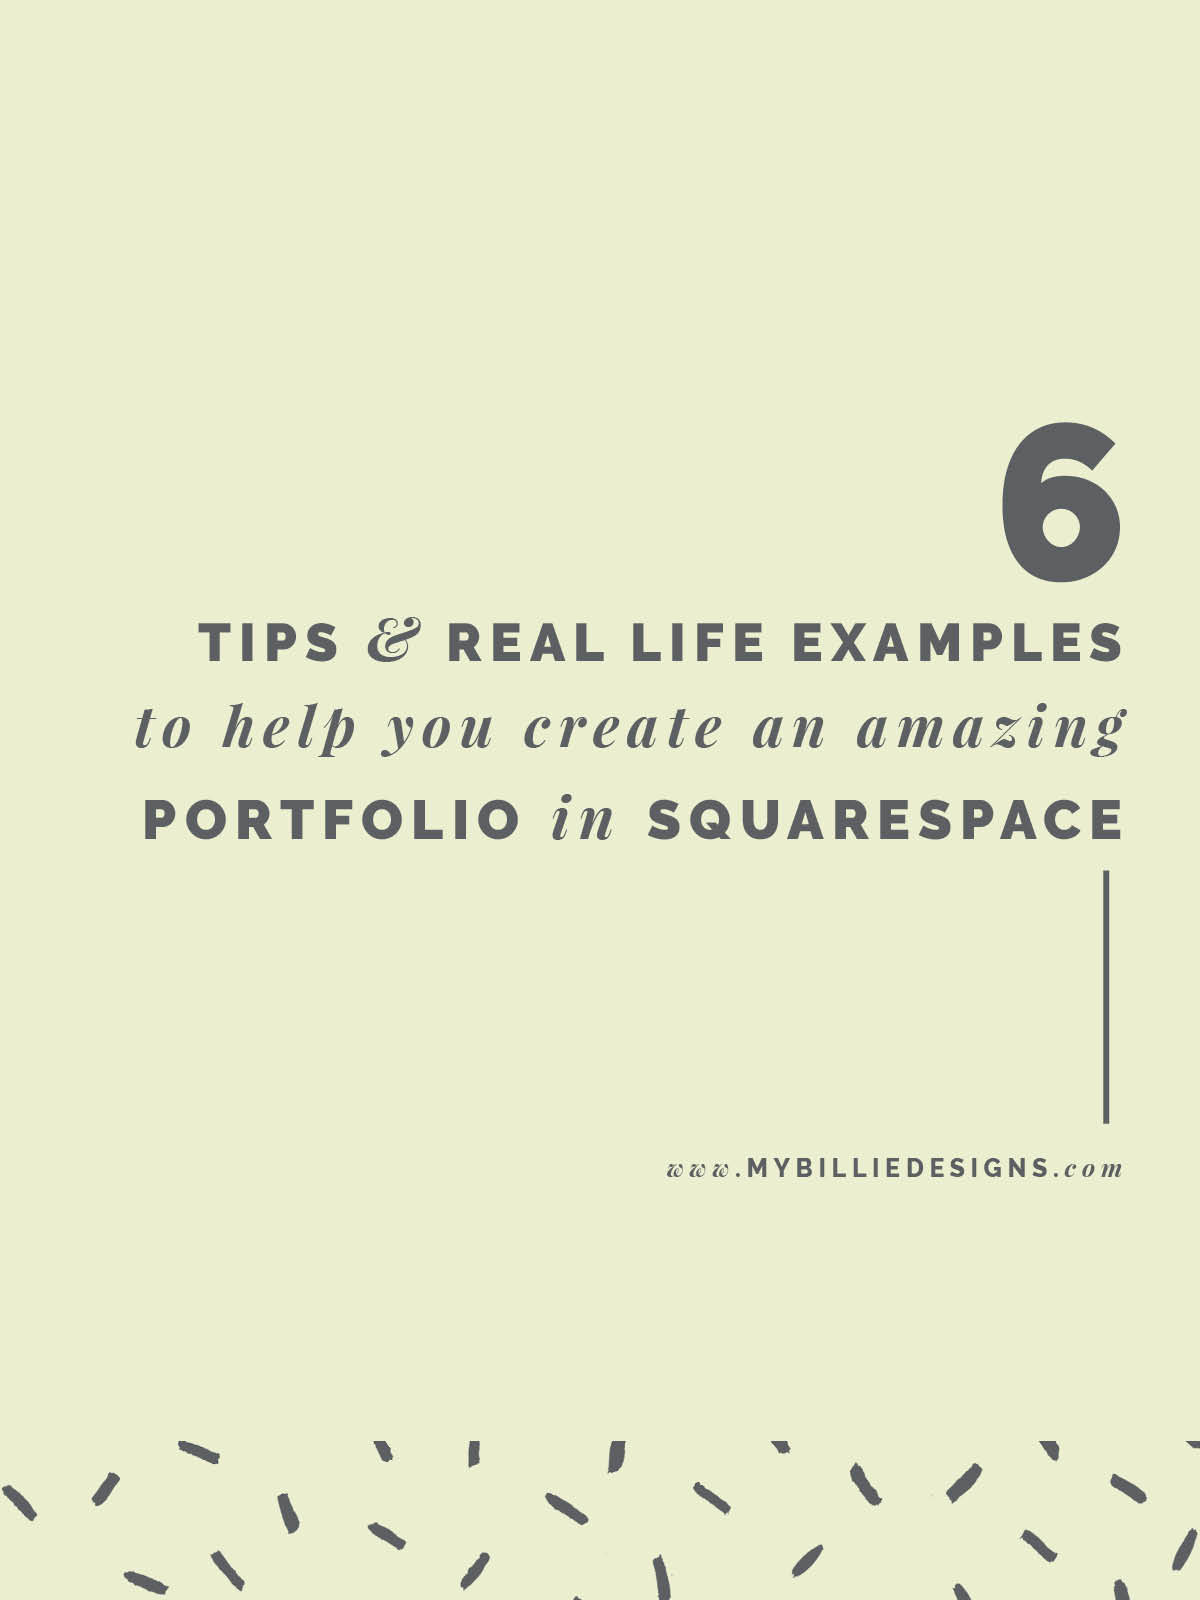 6 tips + real life examples to help you create an amazing portfolio